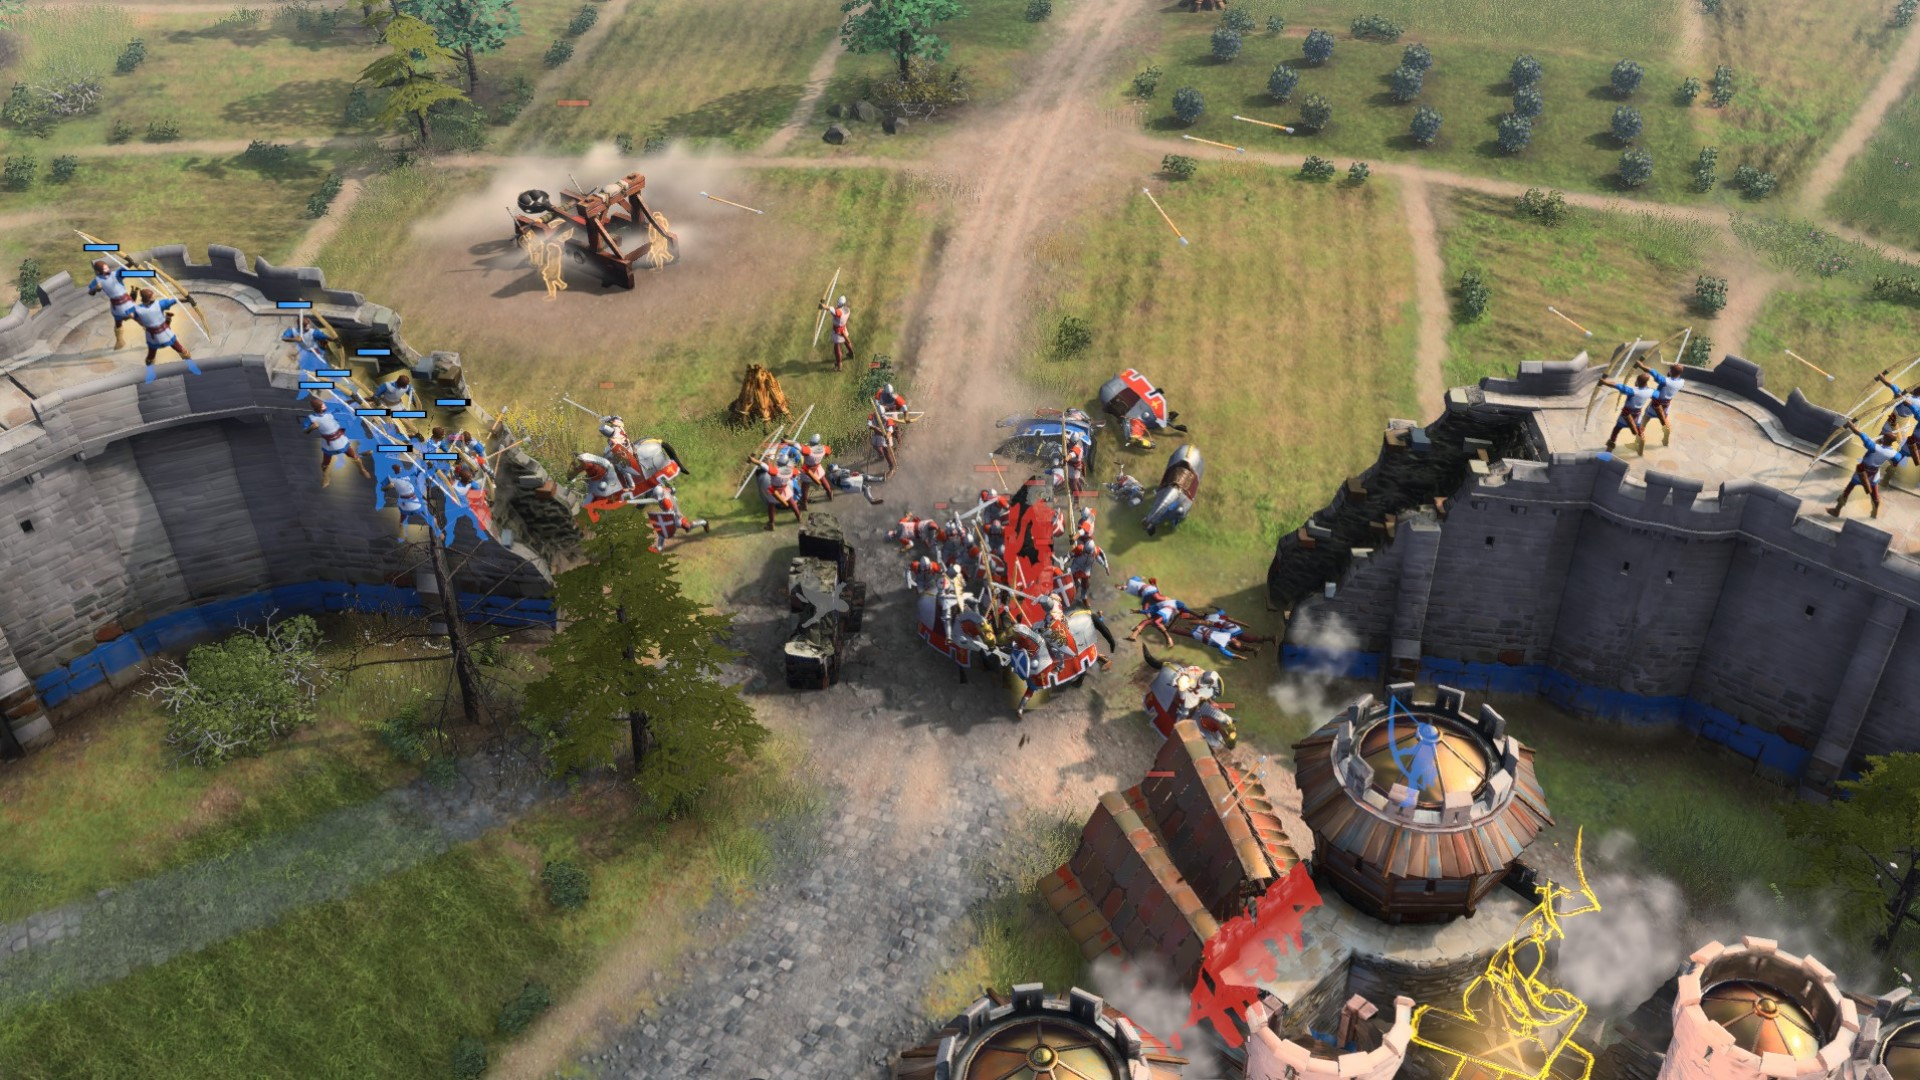 Age of Empires 4 releases tomorrow, so here are some fun facts about the RTS series